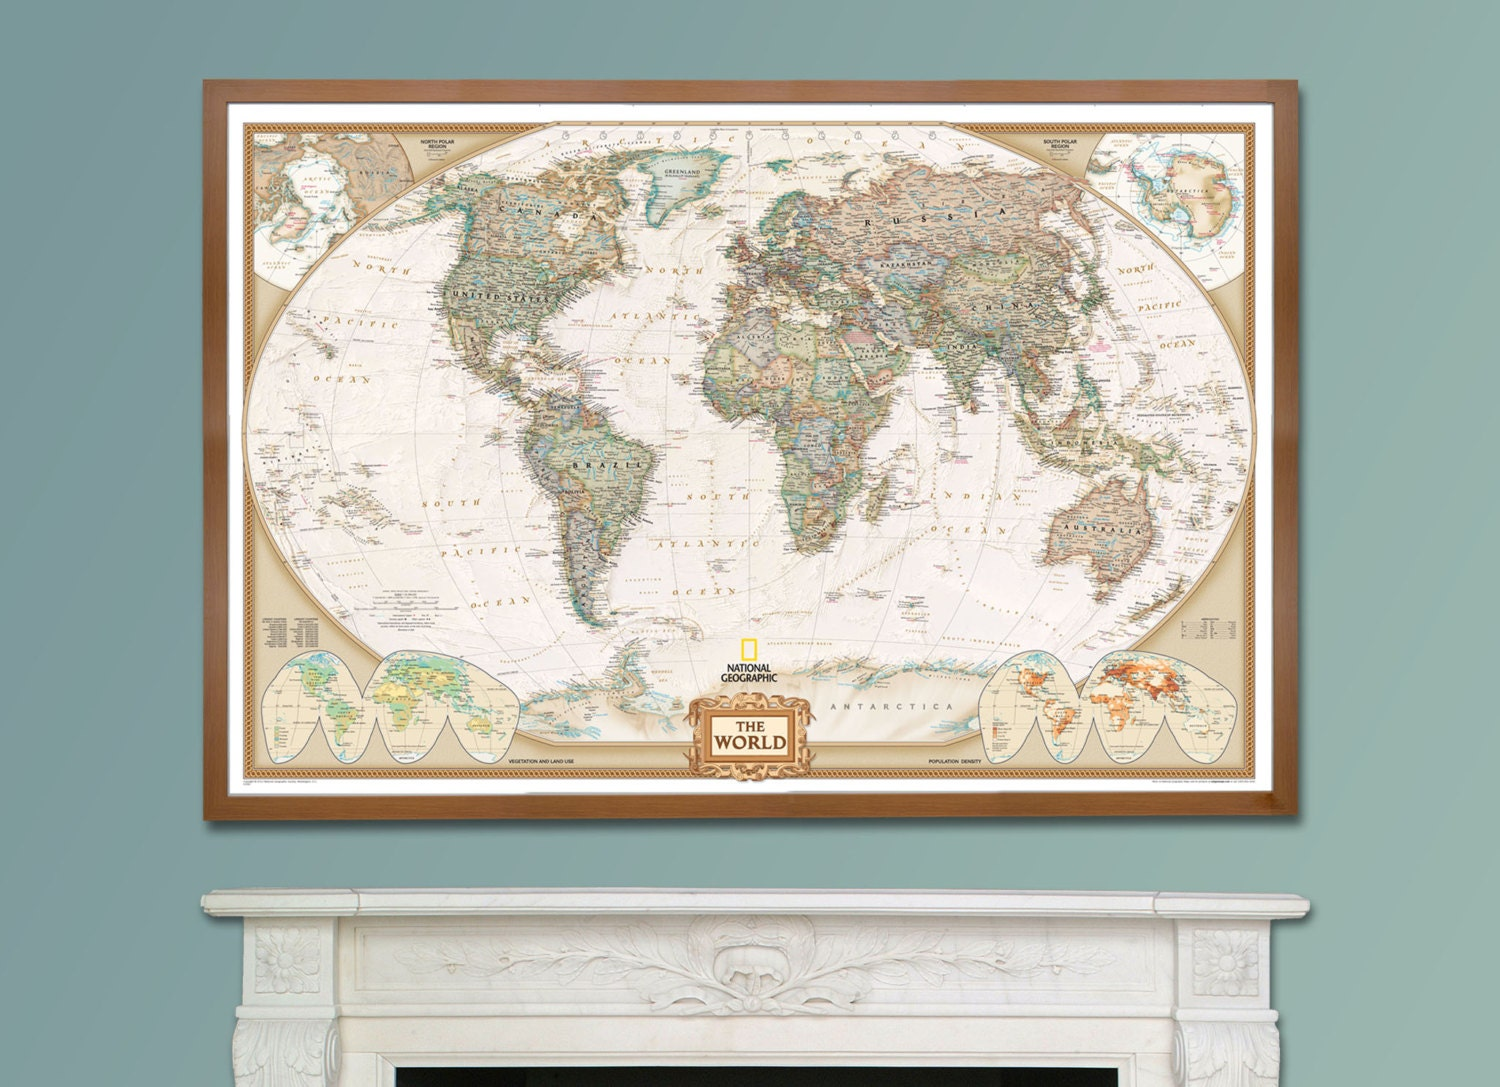 National geographic world executive map framed home decor zoom gumiabroncs Image collections